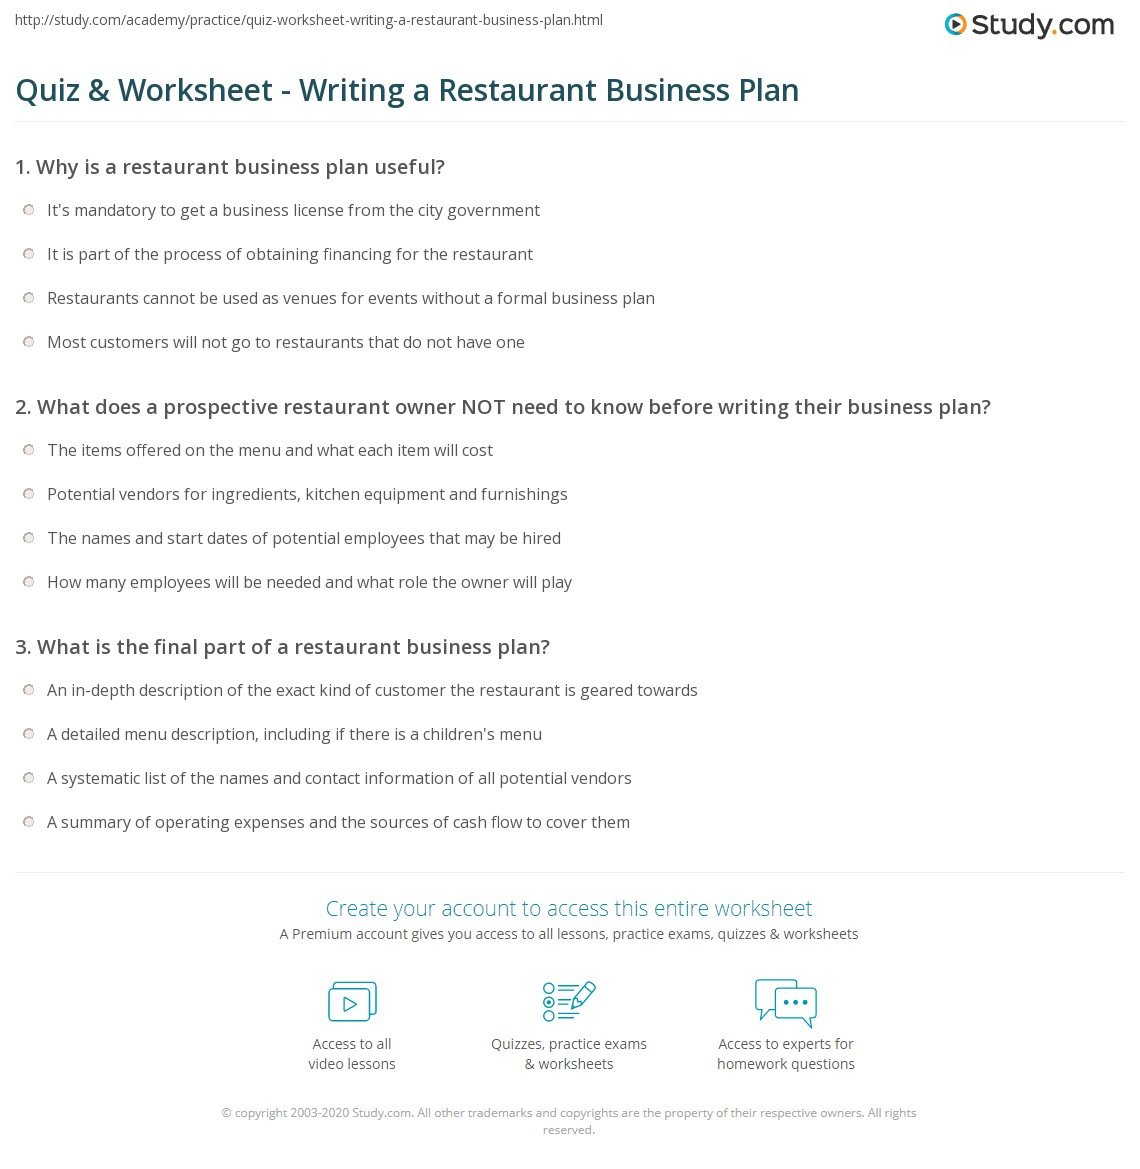 How to write restaurant business plan